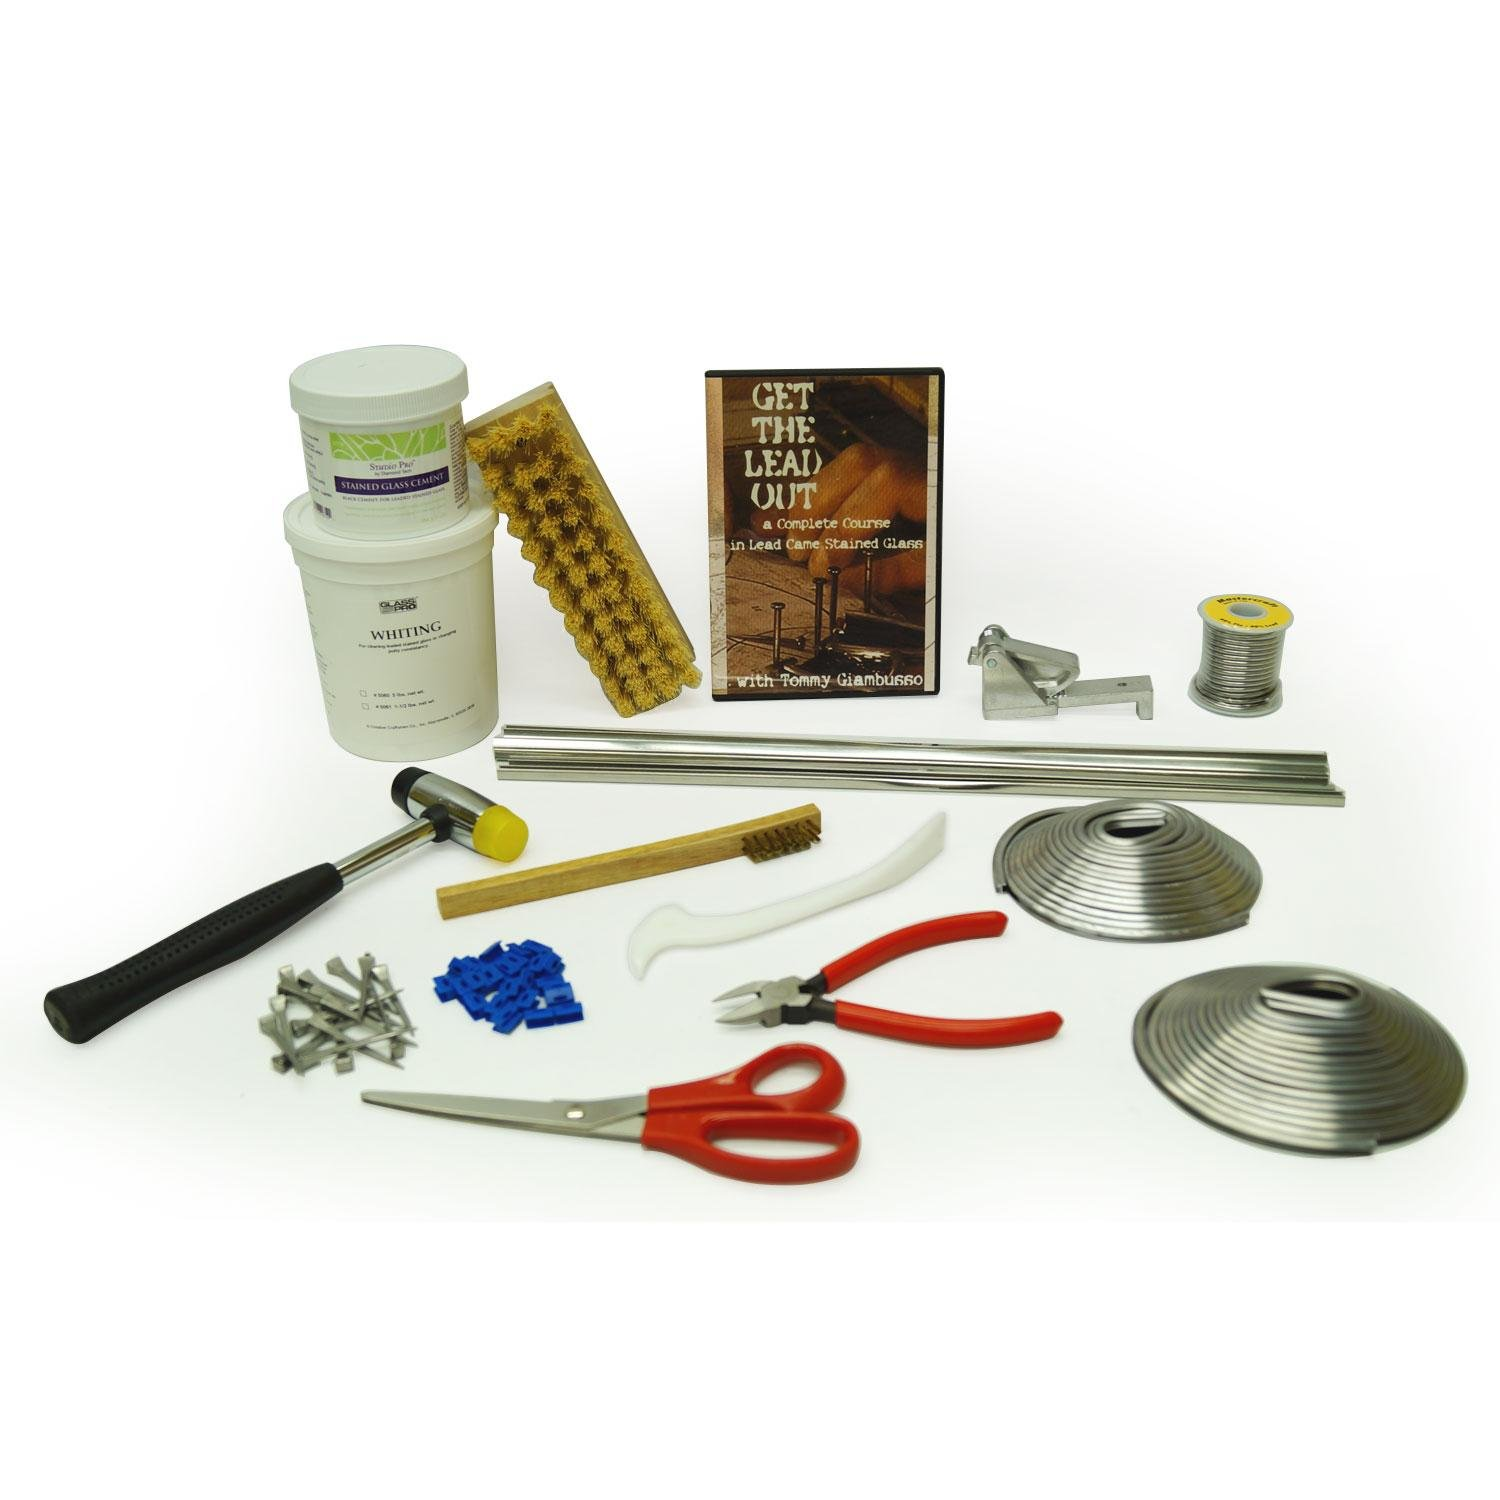 Delphi Glass Ultimate Lead Upgrade Tool Kit